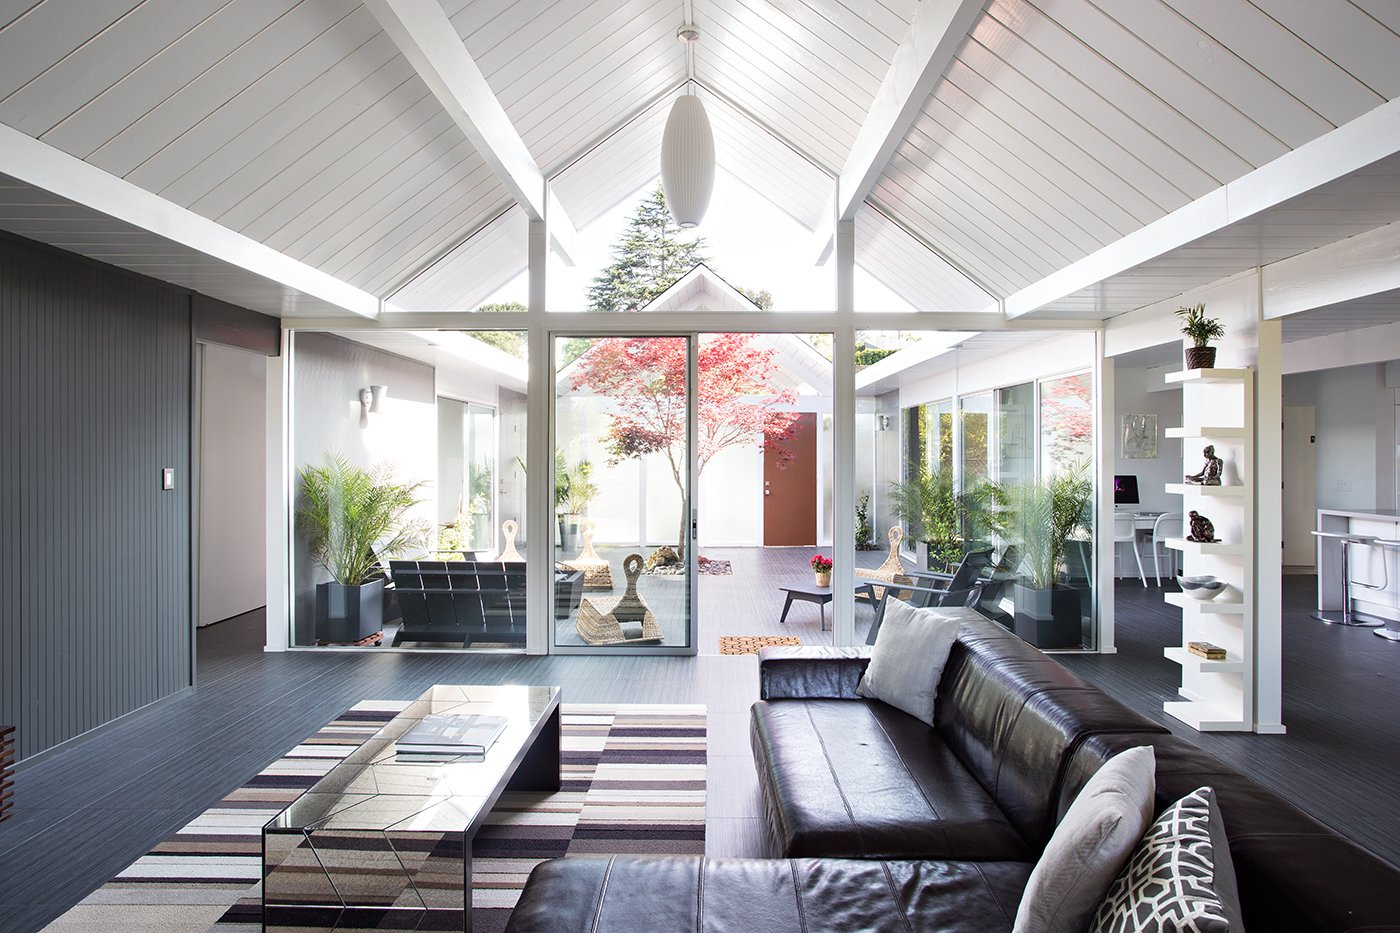 What Are Eichler Homes and Why Do People Love Them?